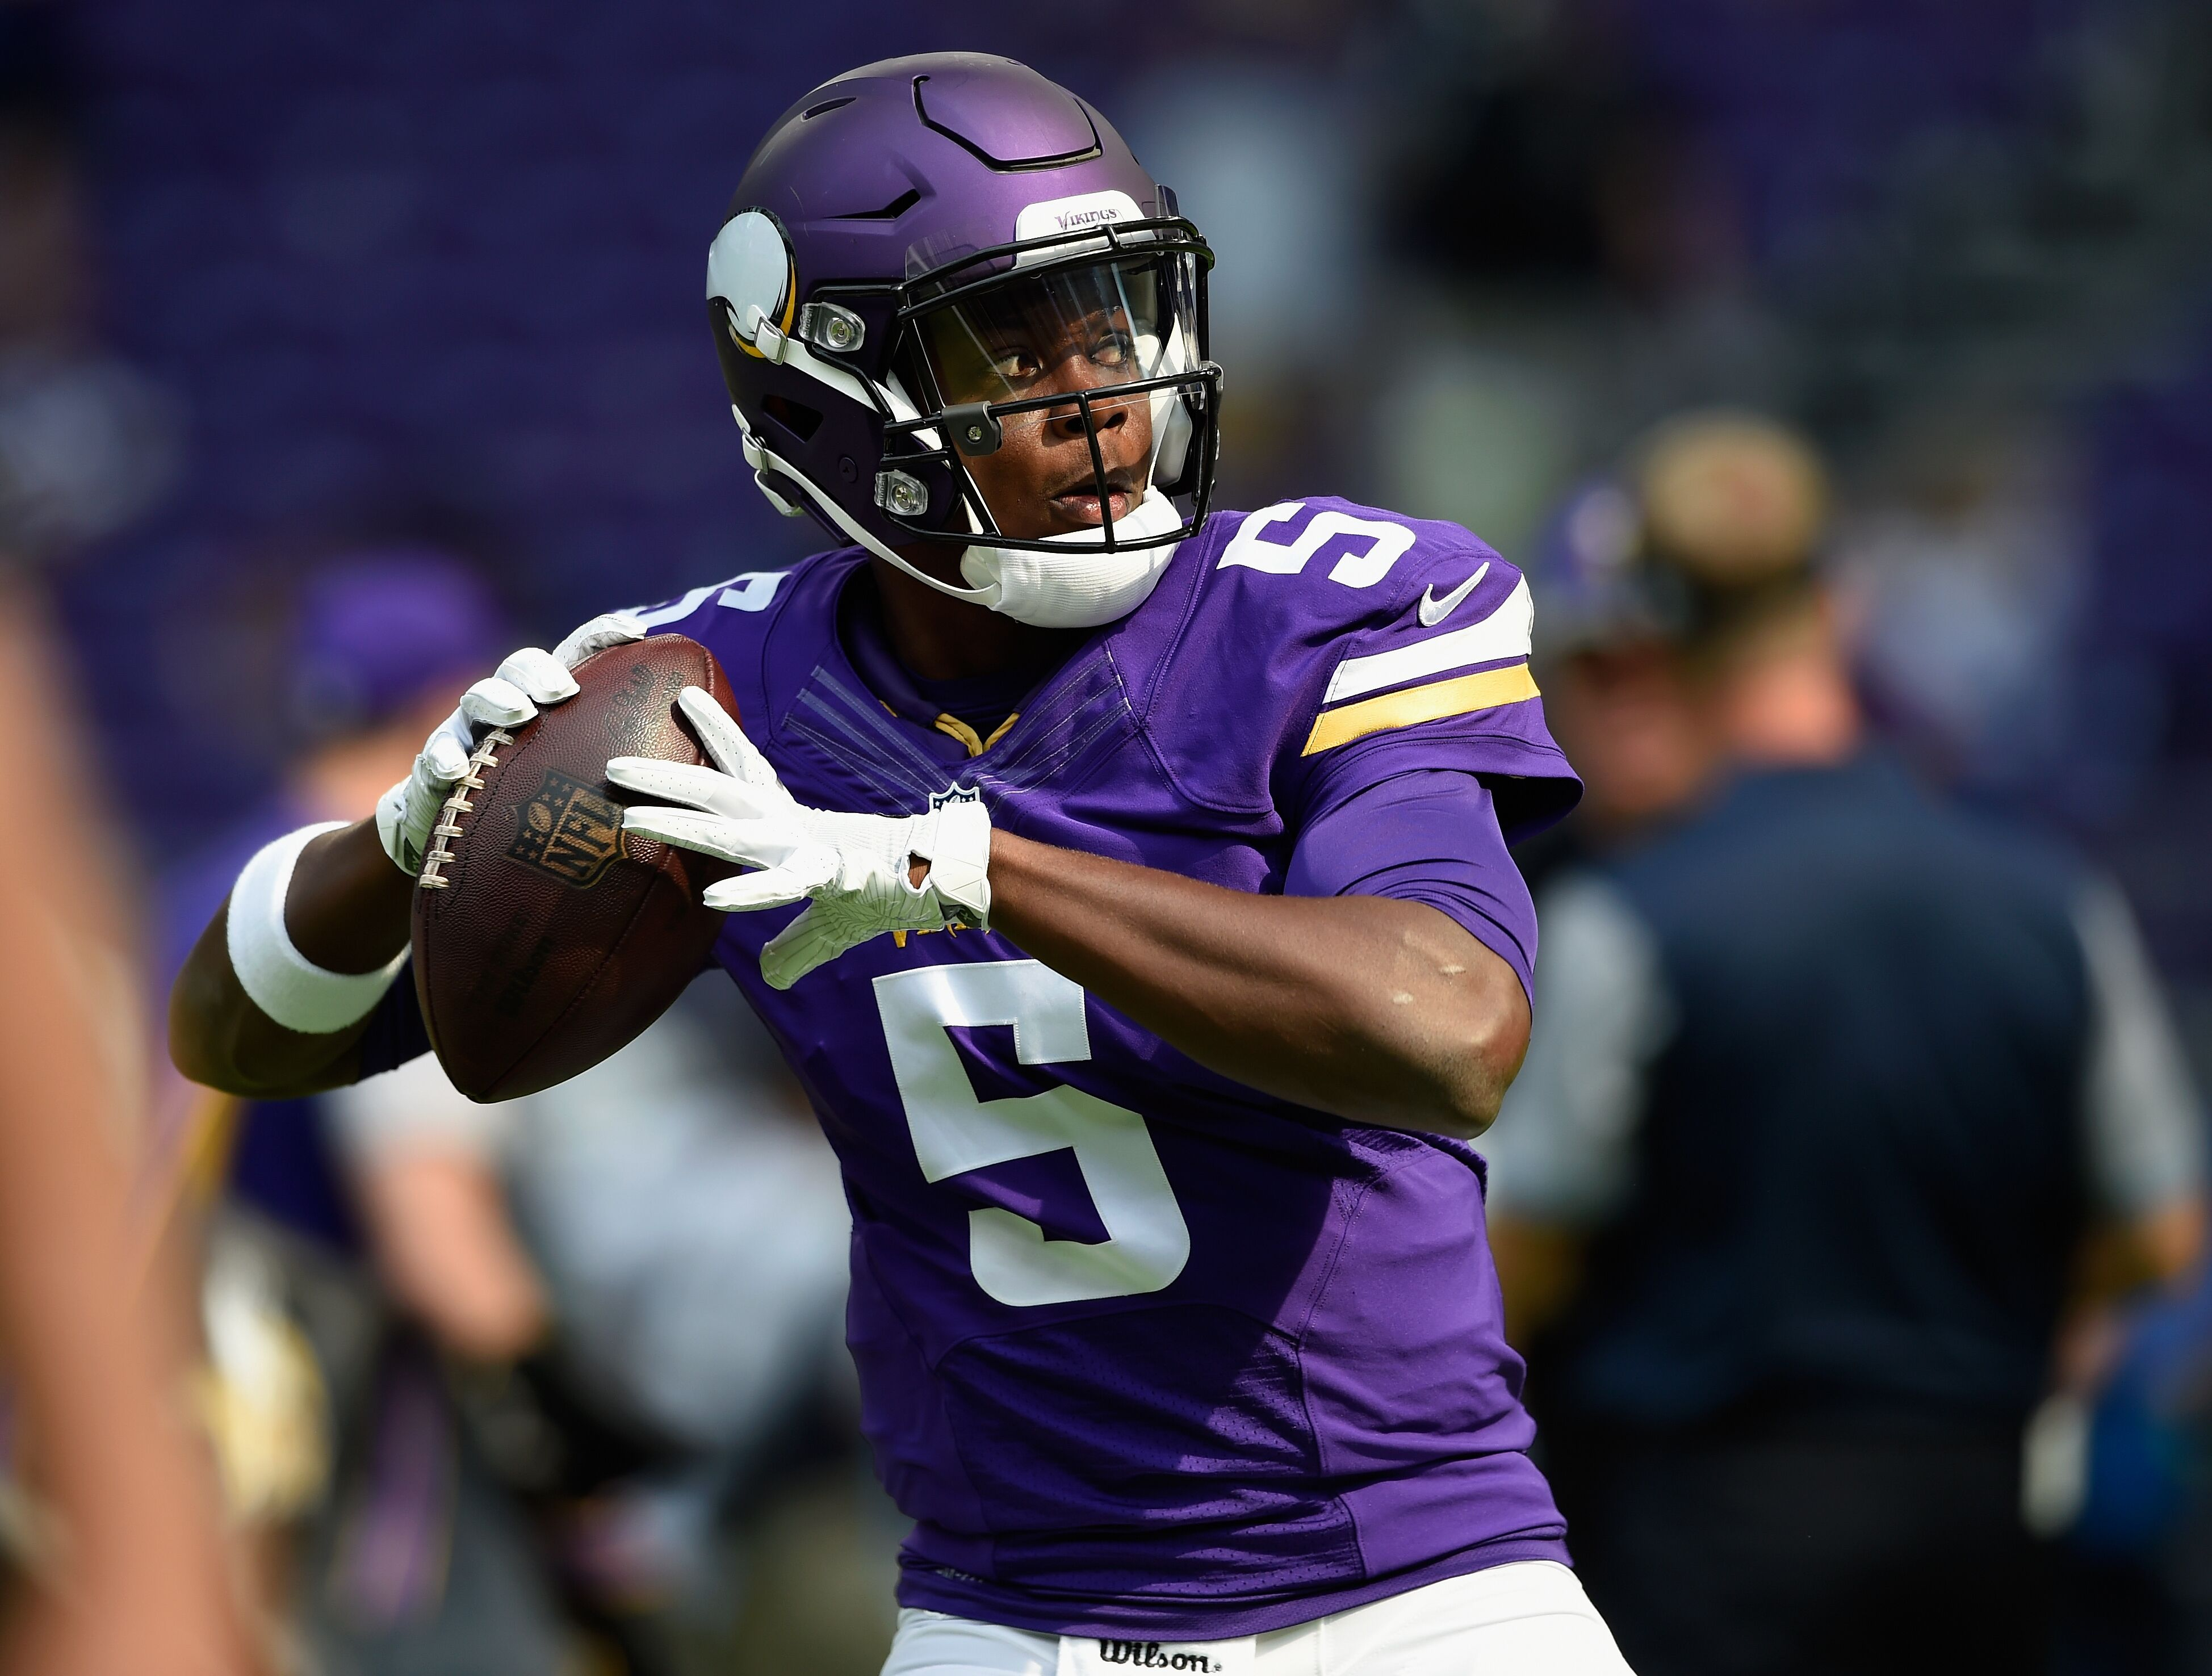 Vikings Quarterback Teddy Bridgewater Returning To The